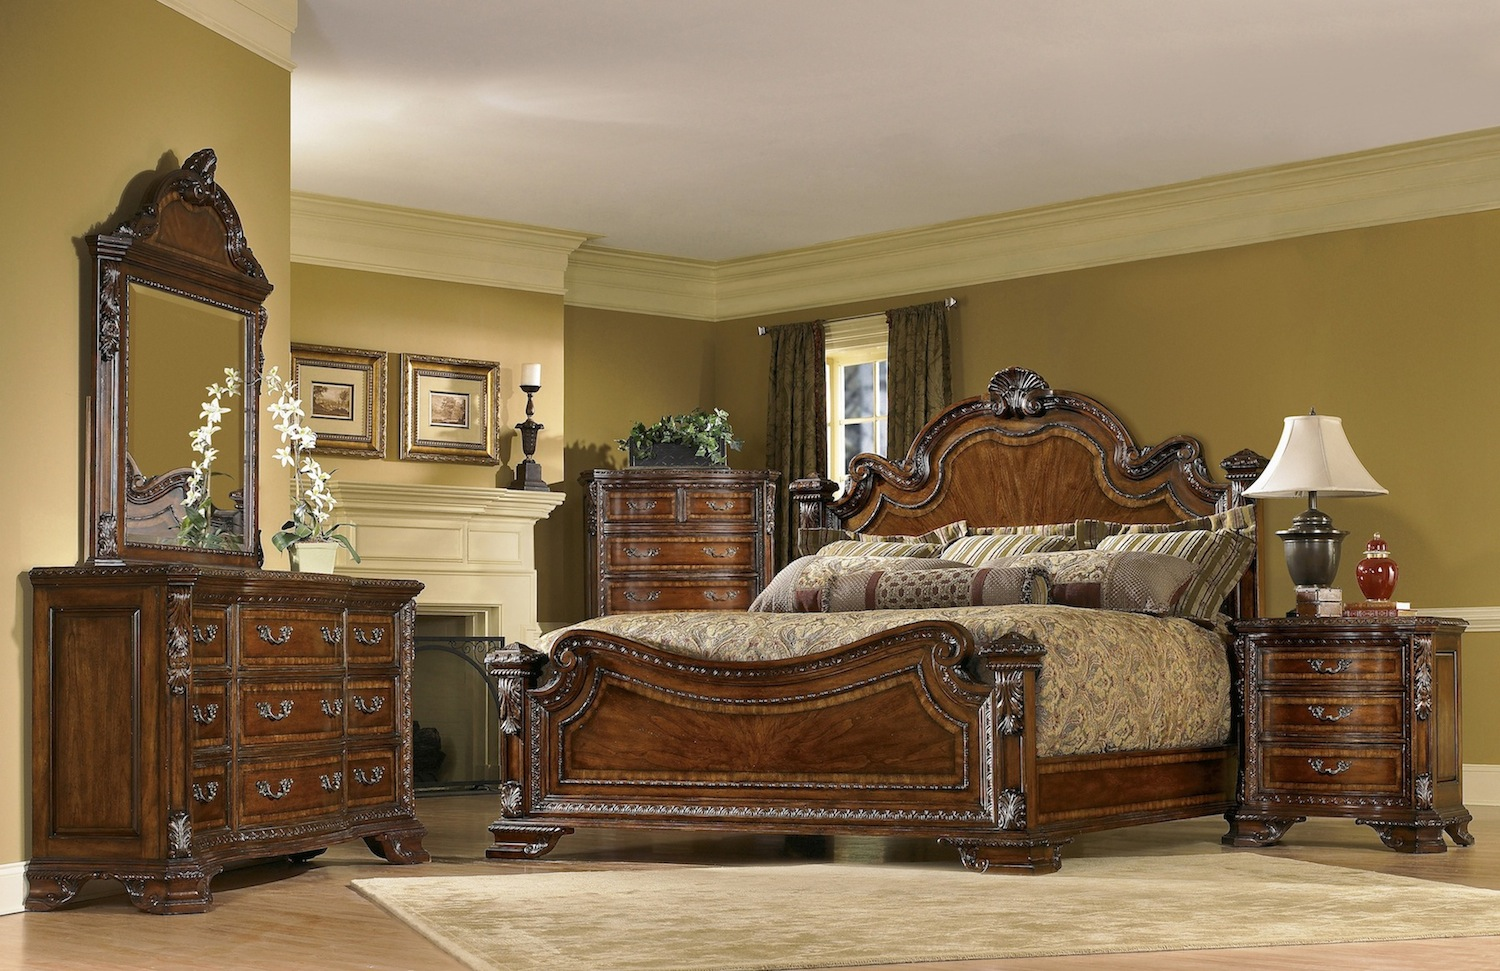 Old world traditional european style bedroom furniture set for King bed sets furniture